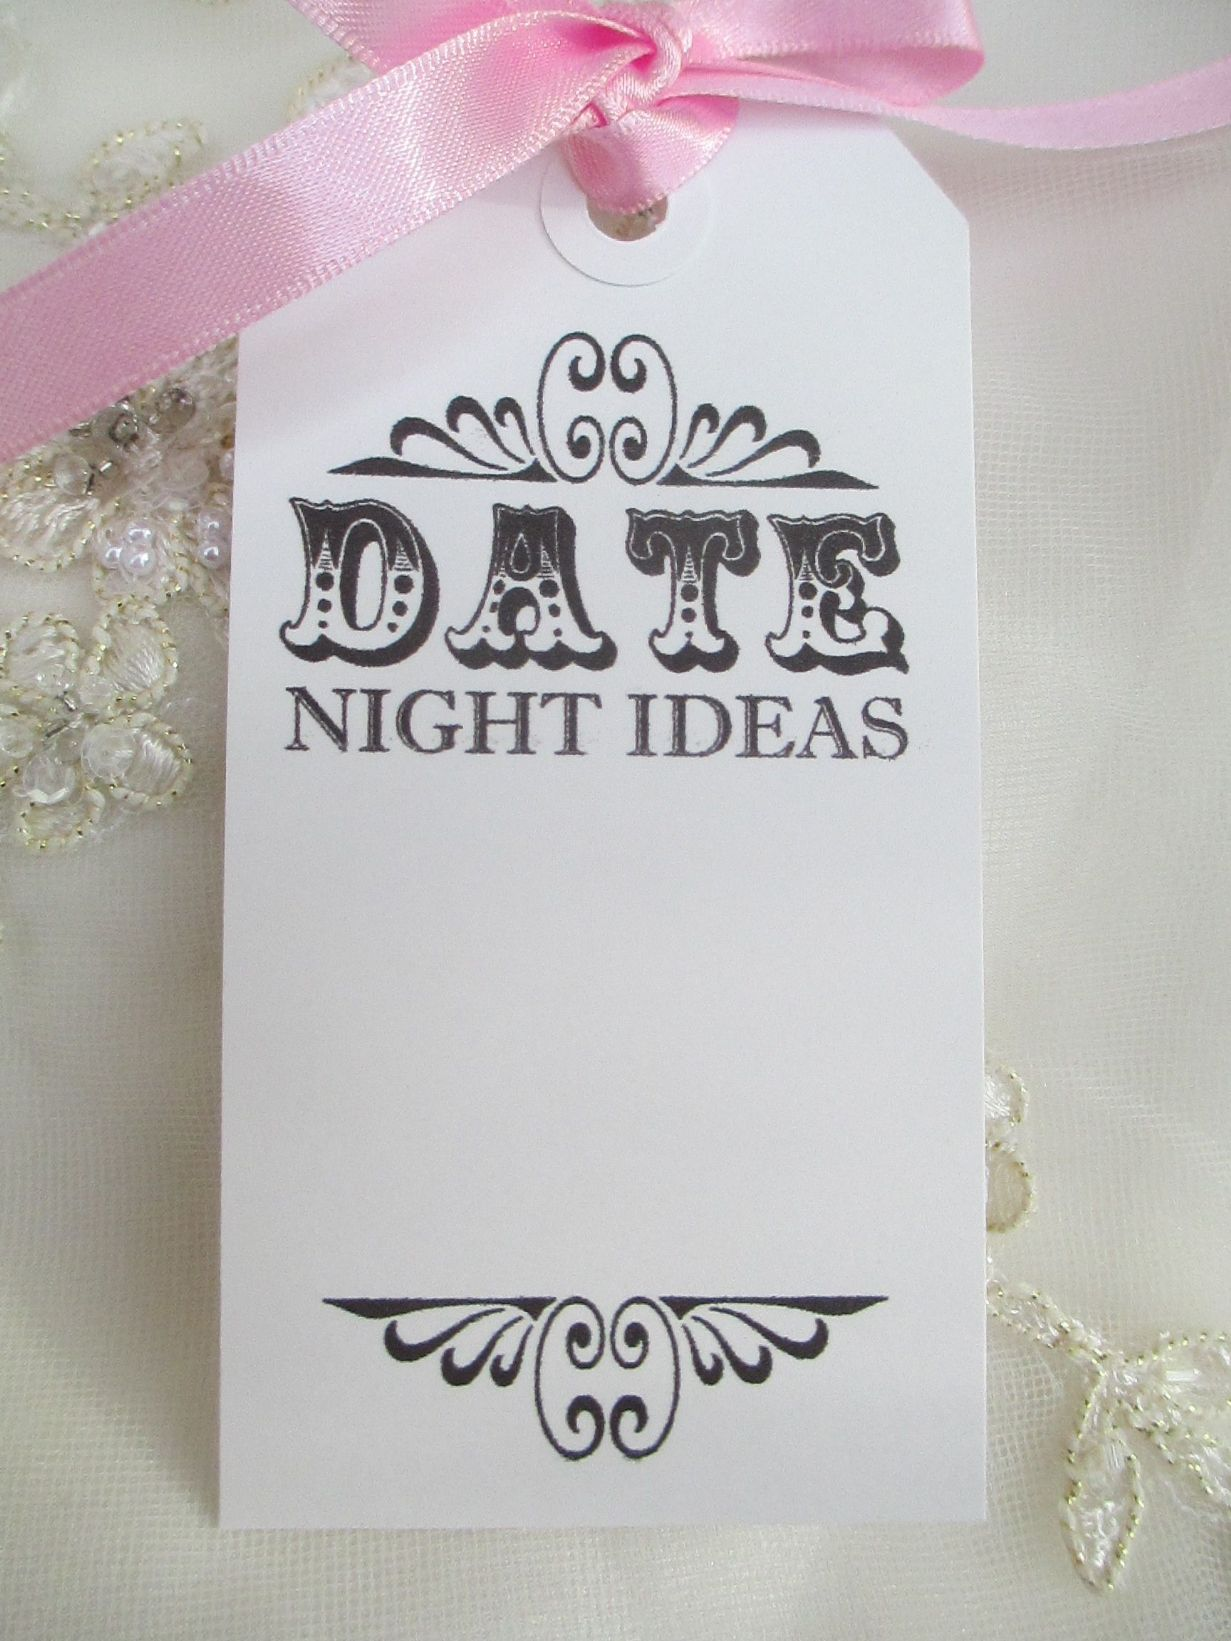 10 Date Night Ideas White Luggage Tags